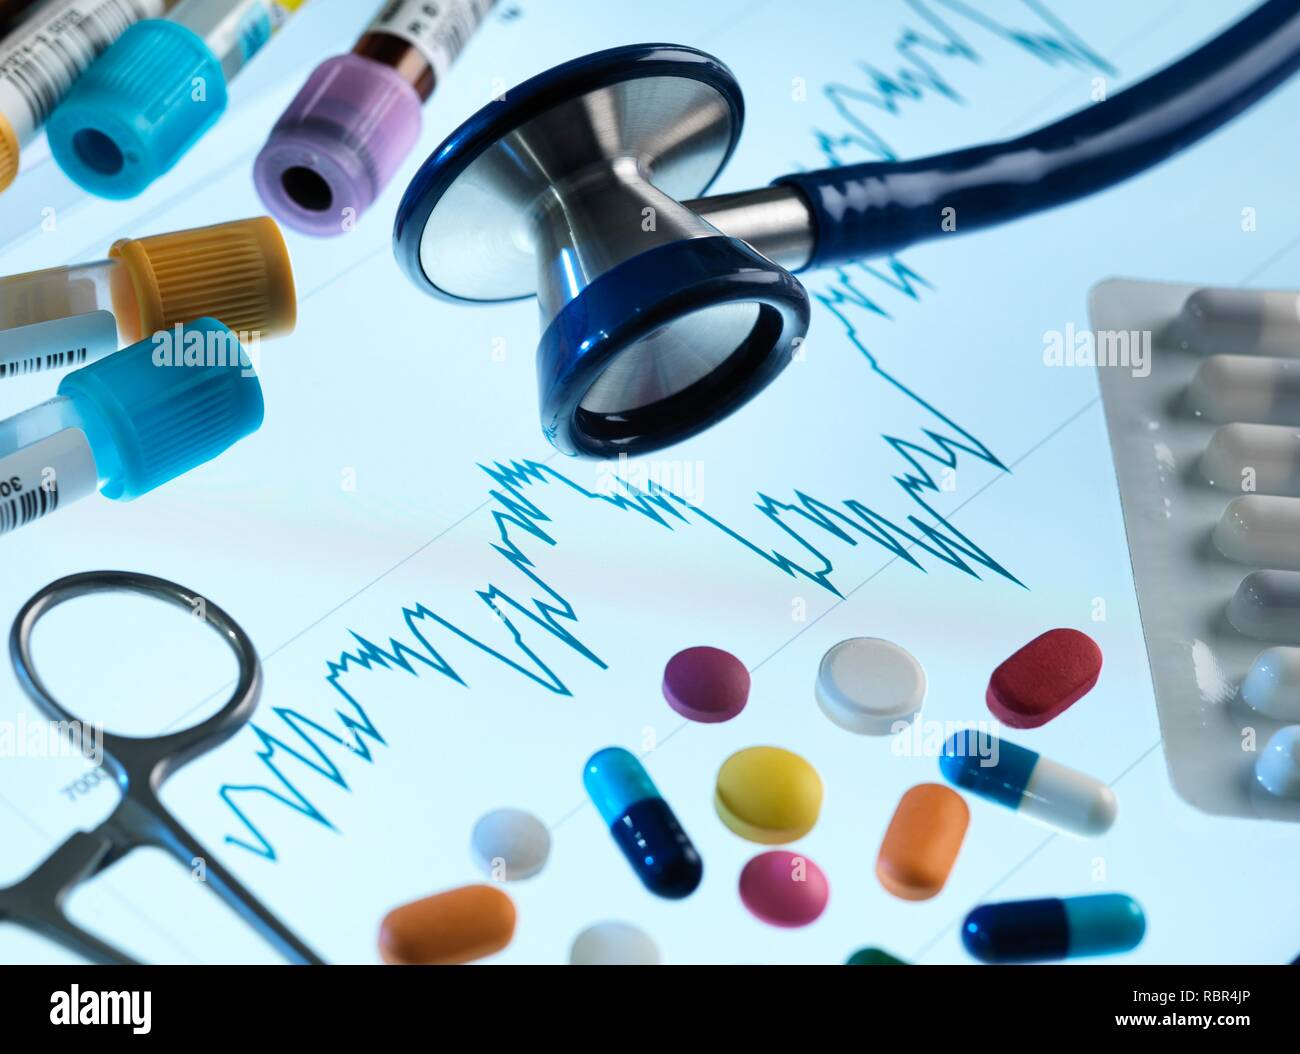 Stethoscope, medicine and medical samples sitting on a share price graph, illustrating investing in pharmaceutical research. - Stock Image